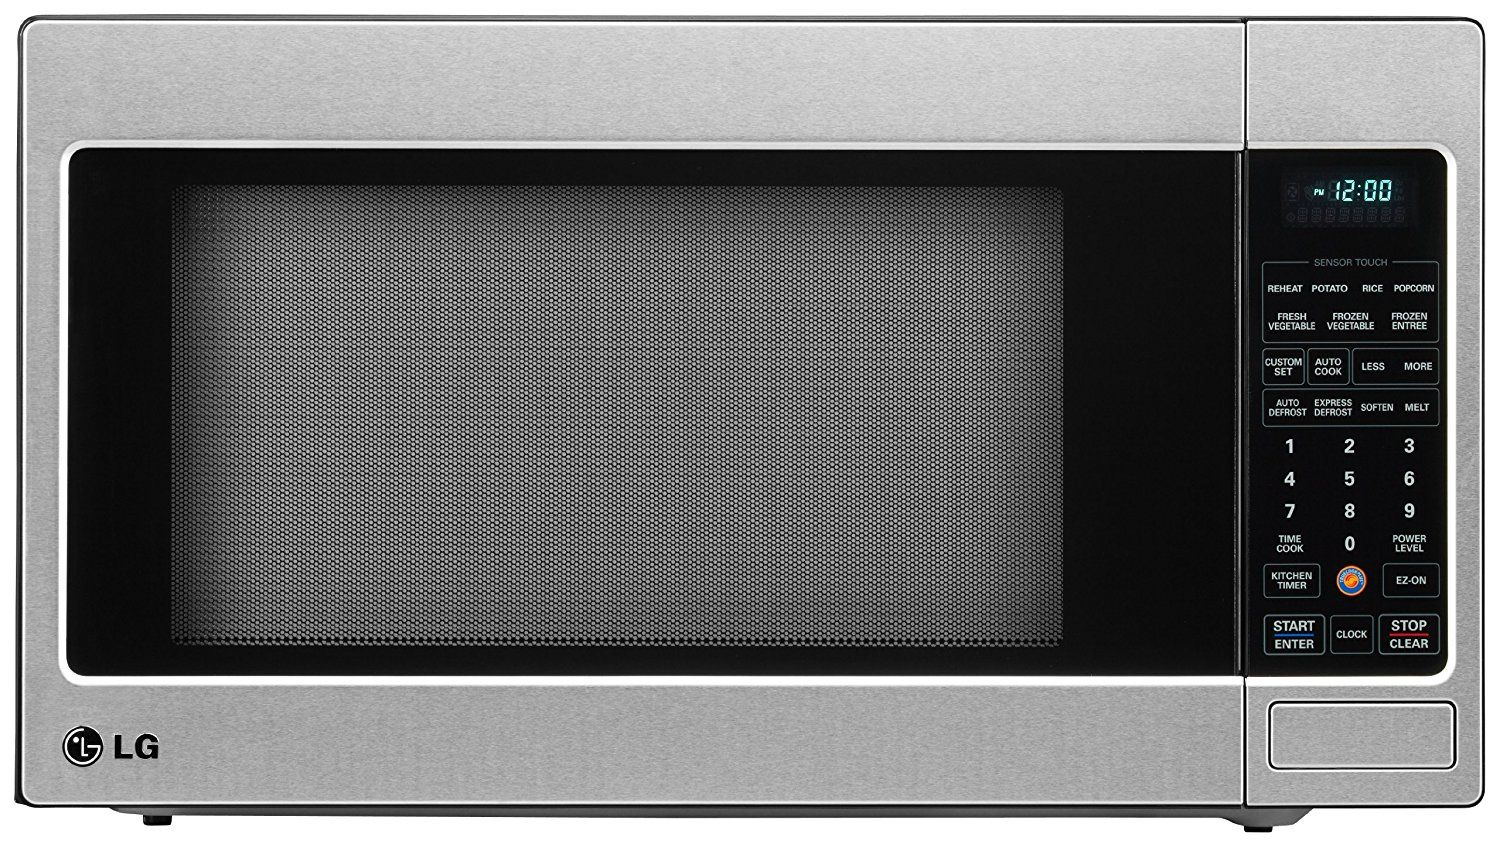 Lg Lcrt2010st 2 0 Cu Ft Counter Top Microwave Oven With True Cook